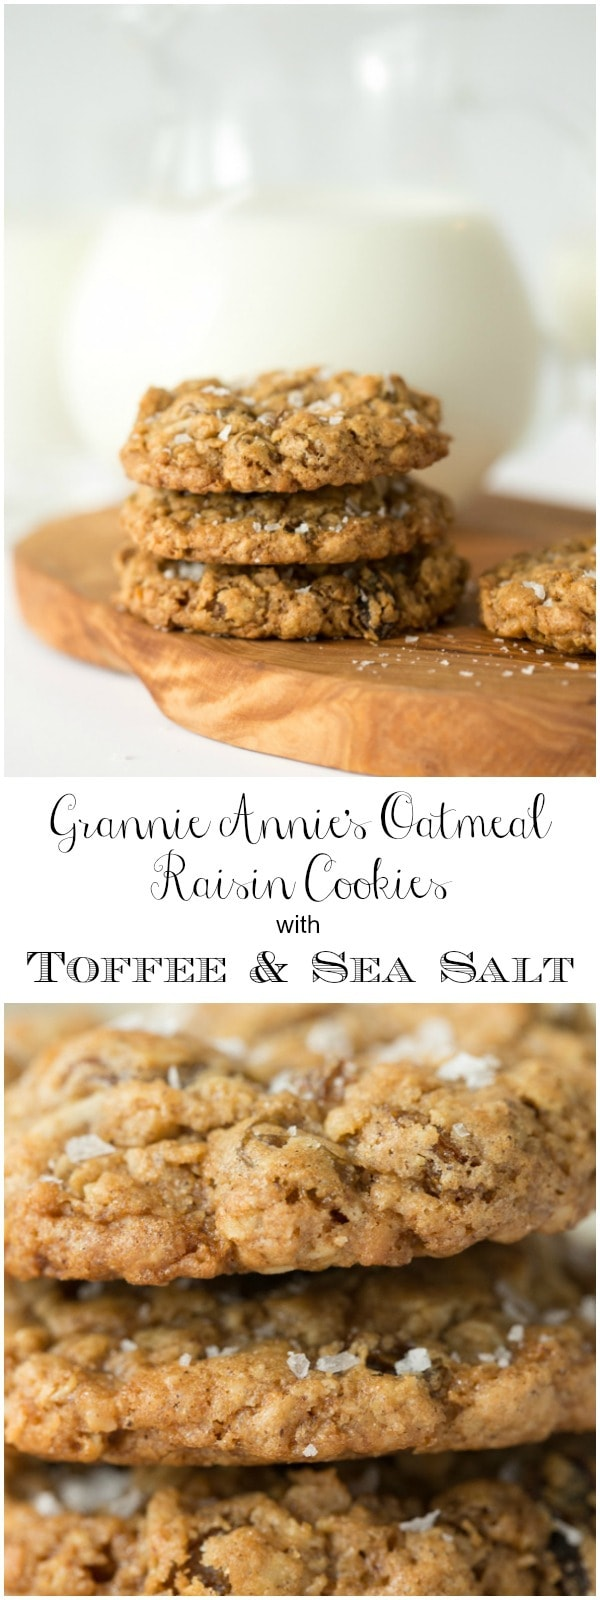 Crazy delicious oatmeal raisin cookies with buttery toffee and coconut. They're topped with a sprinkle of flaky sea salt which takes them over the top!